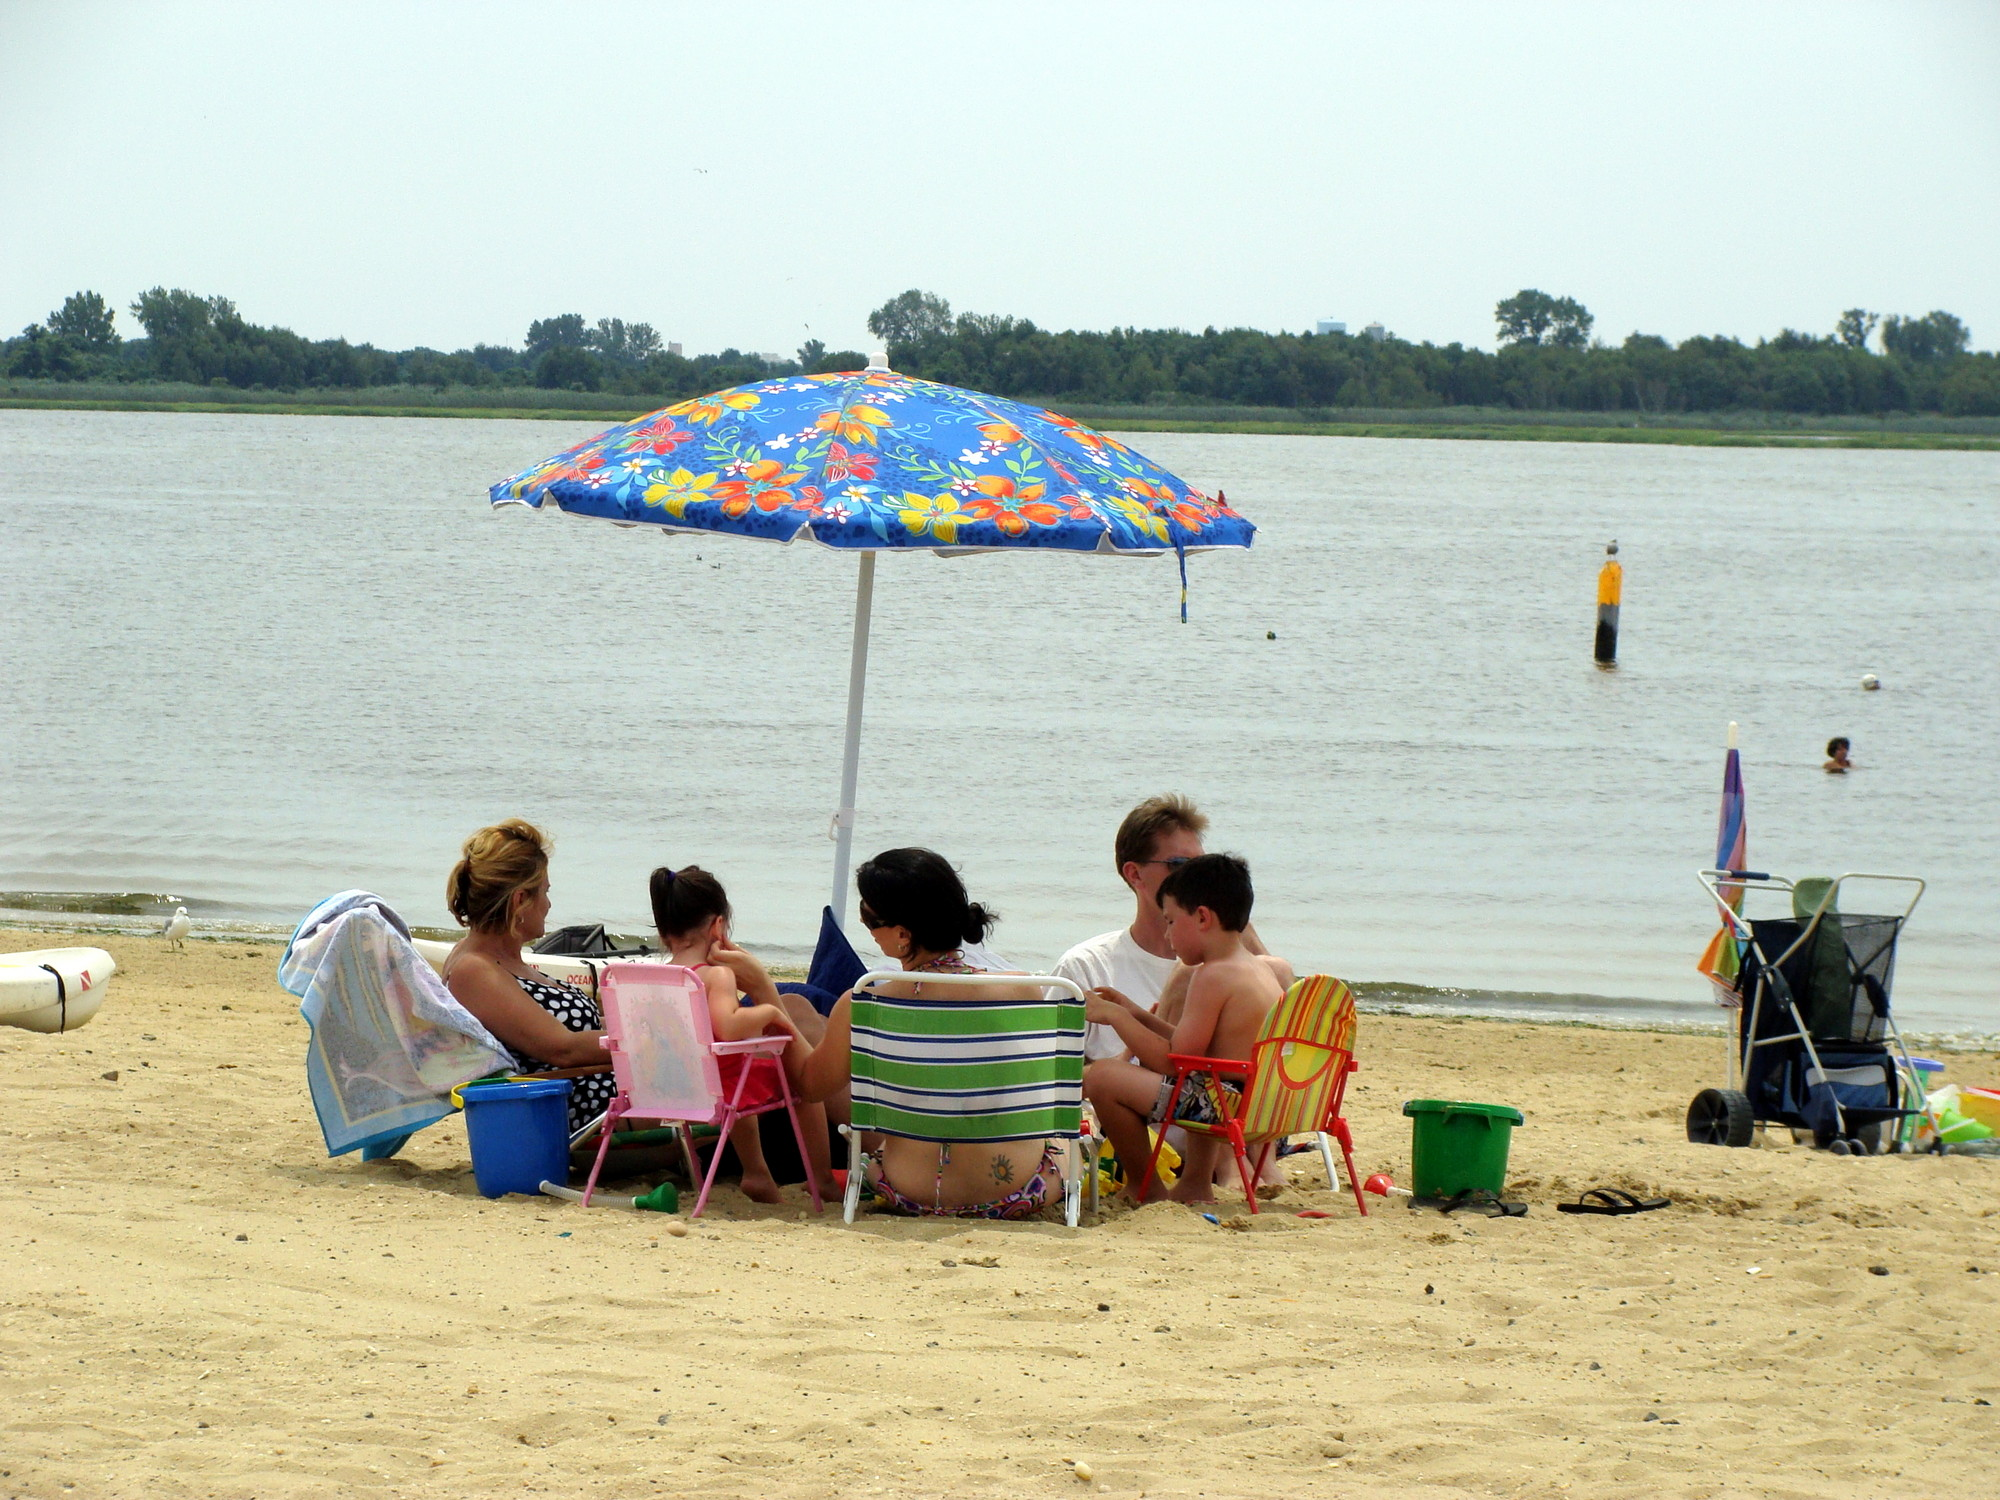 Hewlett Point Park�s beach on Hewlett Bay is a relaxing place to spend some time with family and friends.